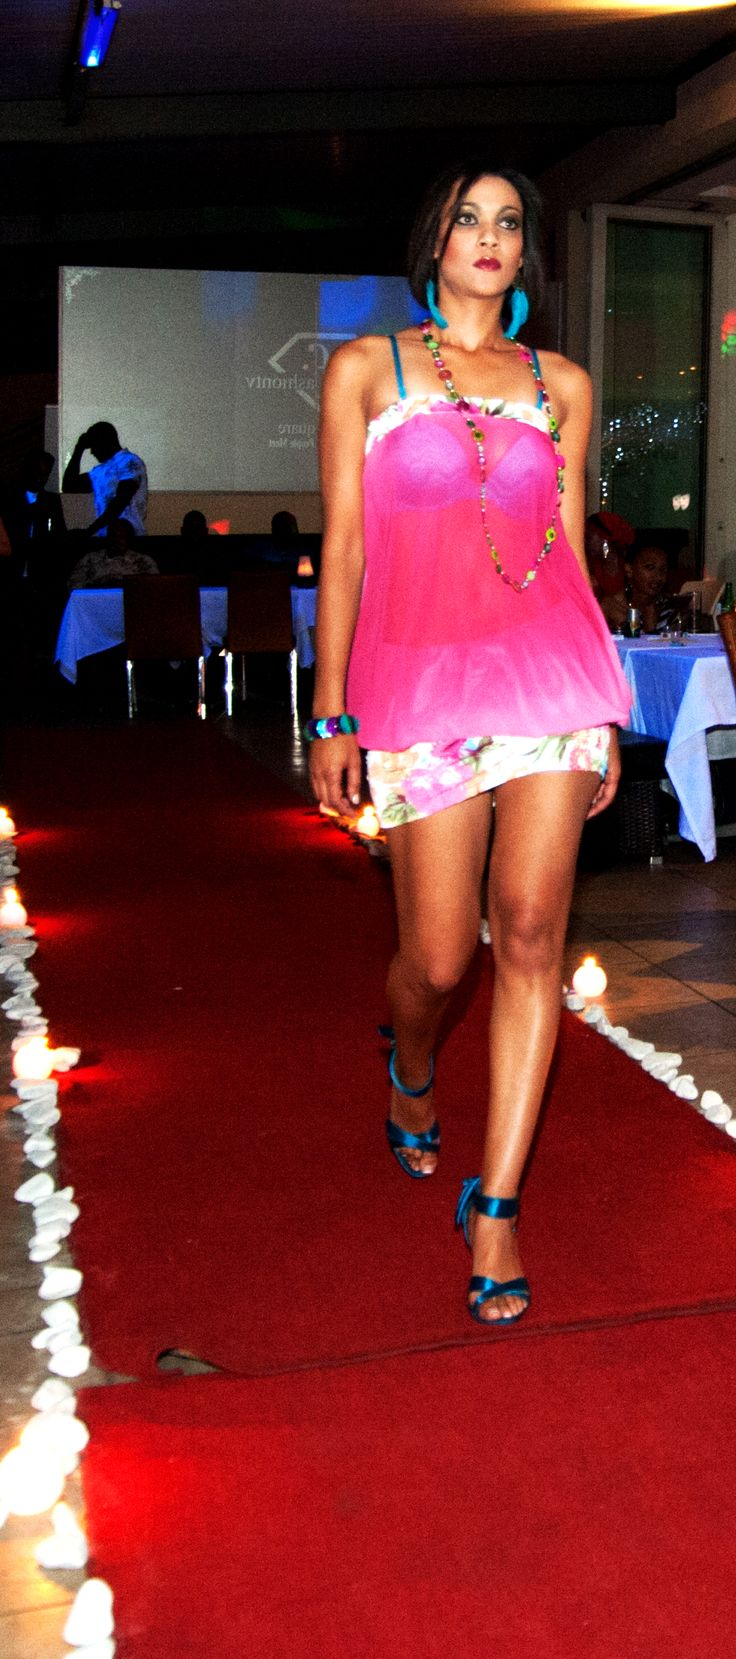 Limba A/W Collection 2011: #Fashion #SouthAfrican #Designer #FTV #Sandton